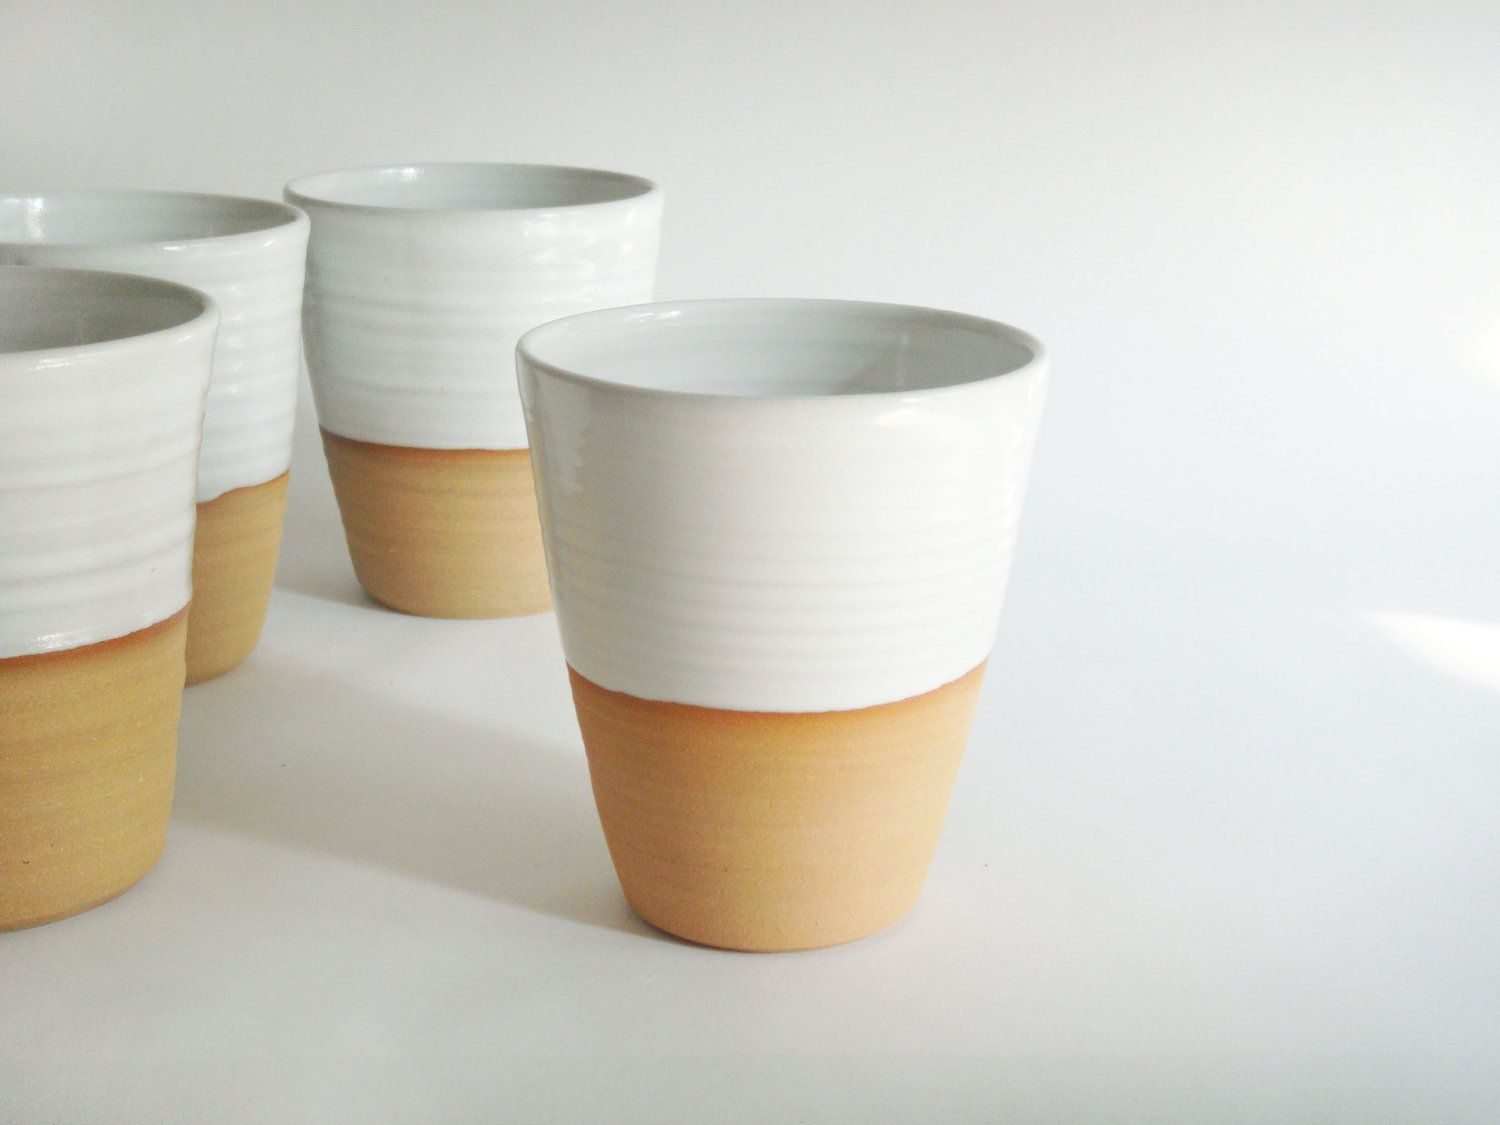 White Ceramic Coffee Cups Want Mug Without A Handle White Minimalist Ceramic